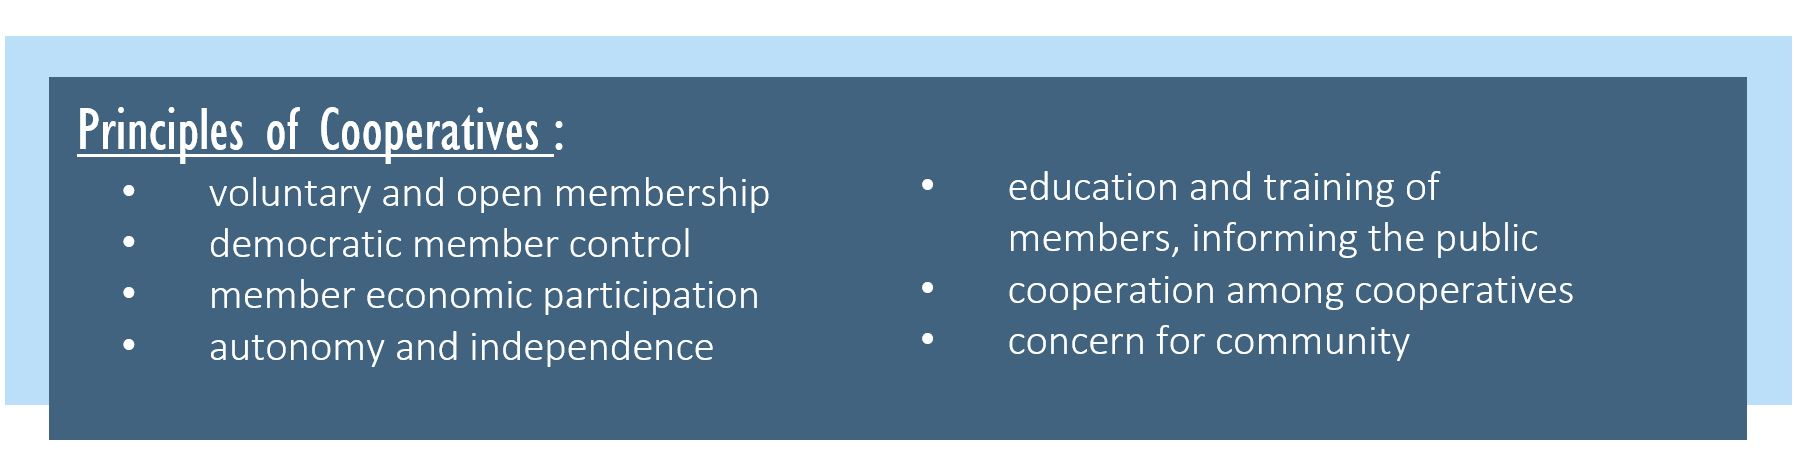 Principles of Cooperatives: 1. voluntary and open membership 2. democratic member control 3. member economic participation 4. autonomy and independence education and training of members, informing the public 5. cooperation among cooperatives 6. concern for community